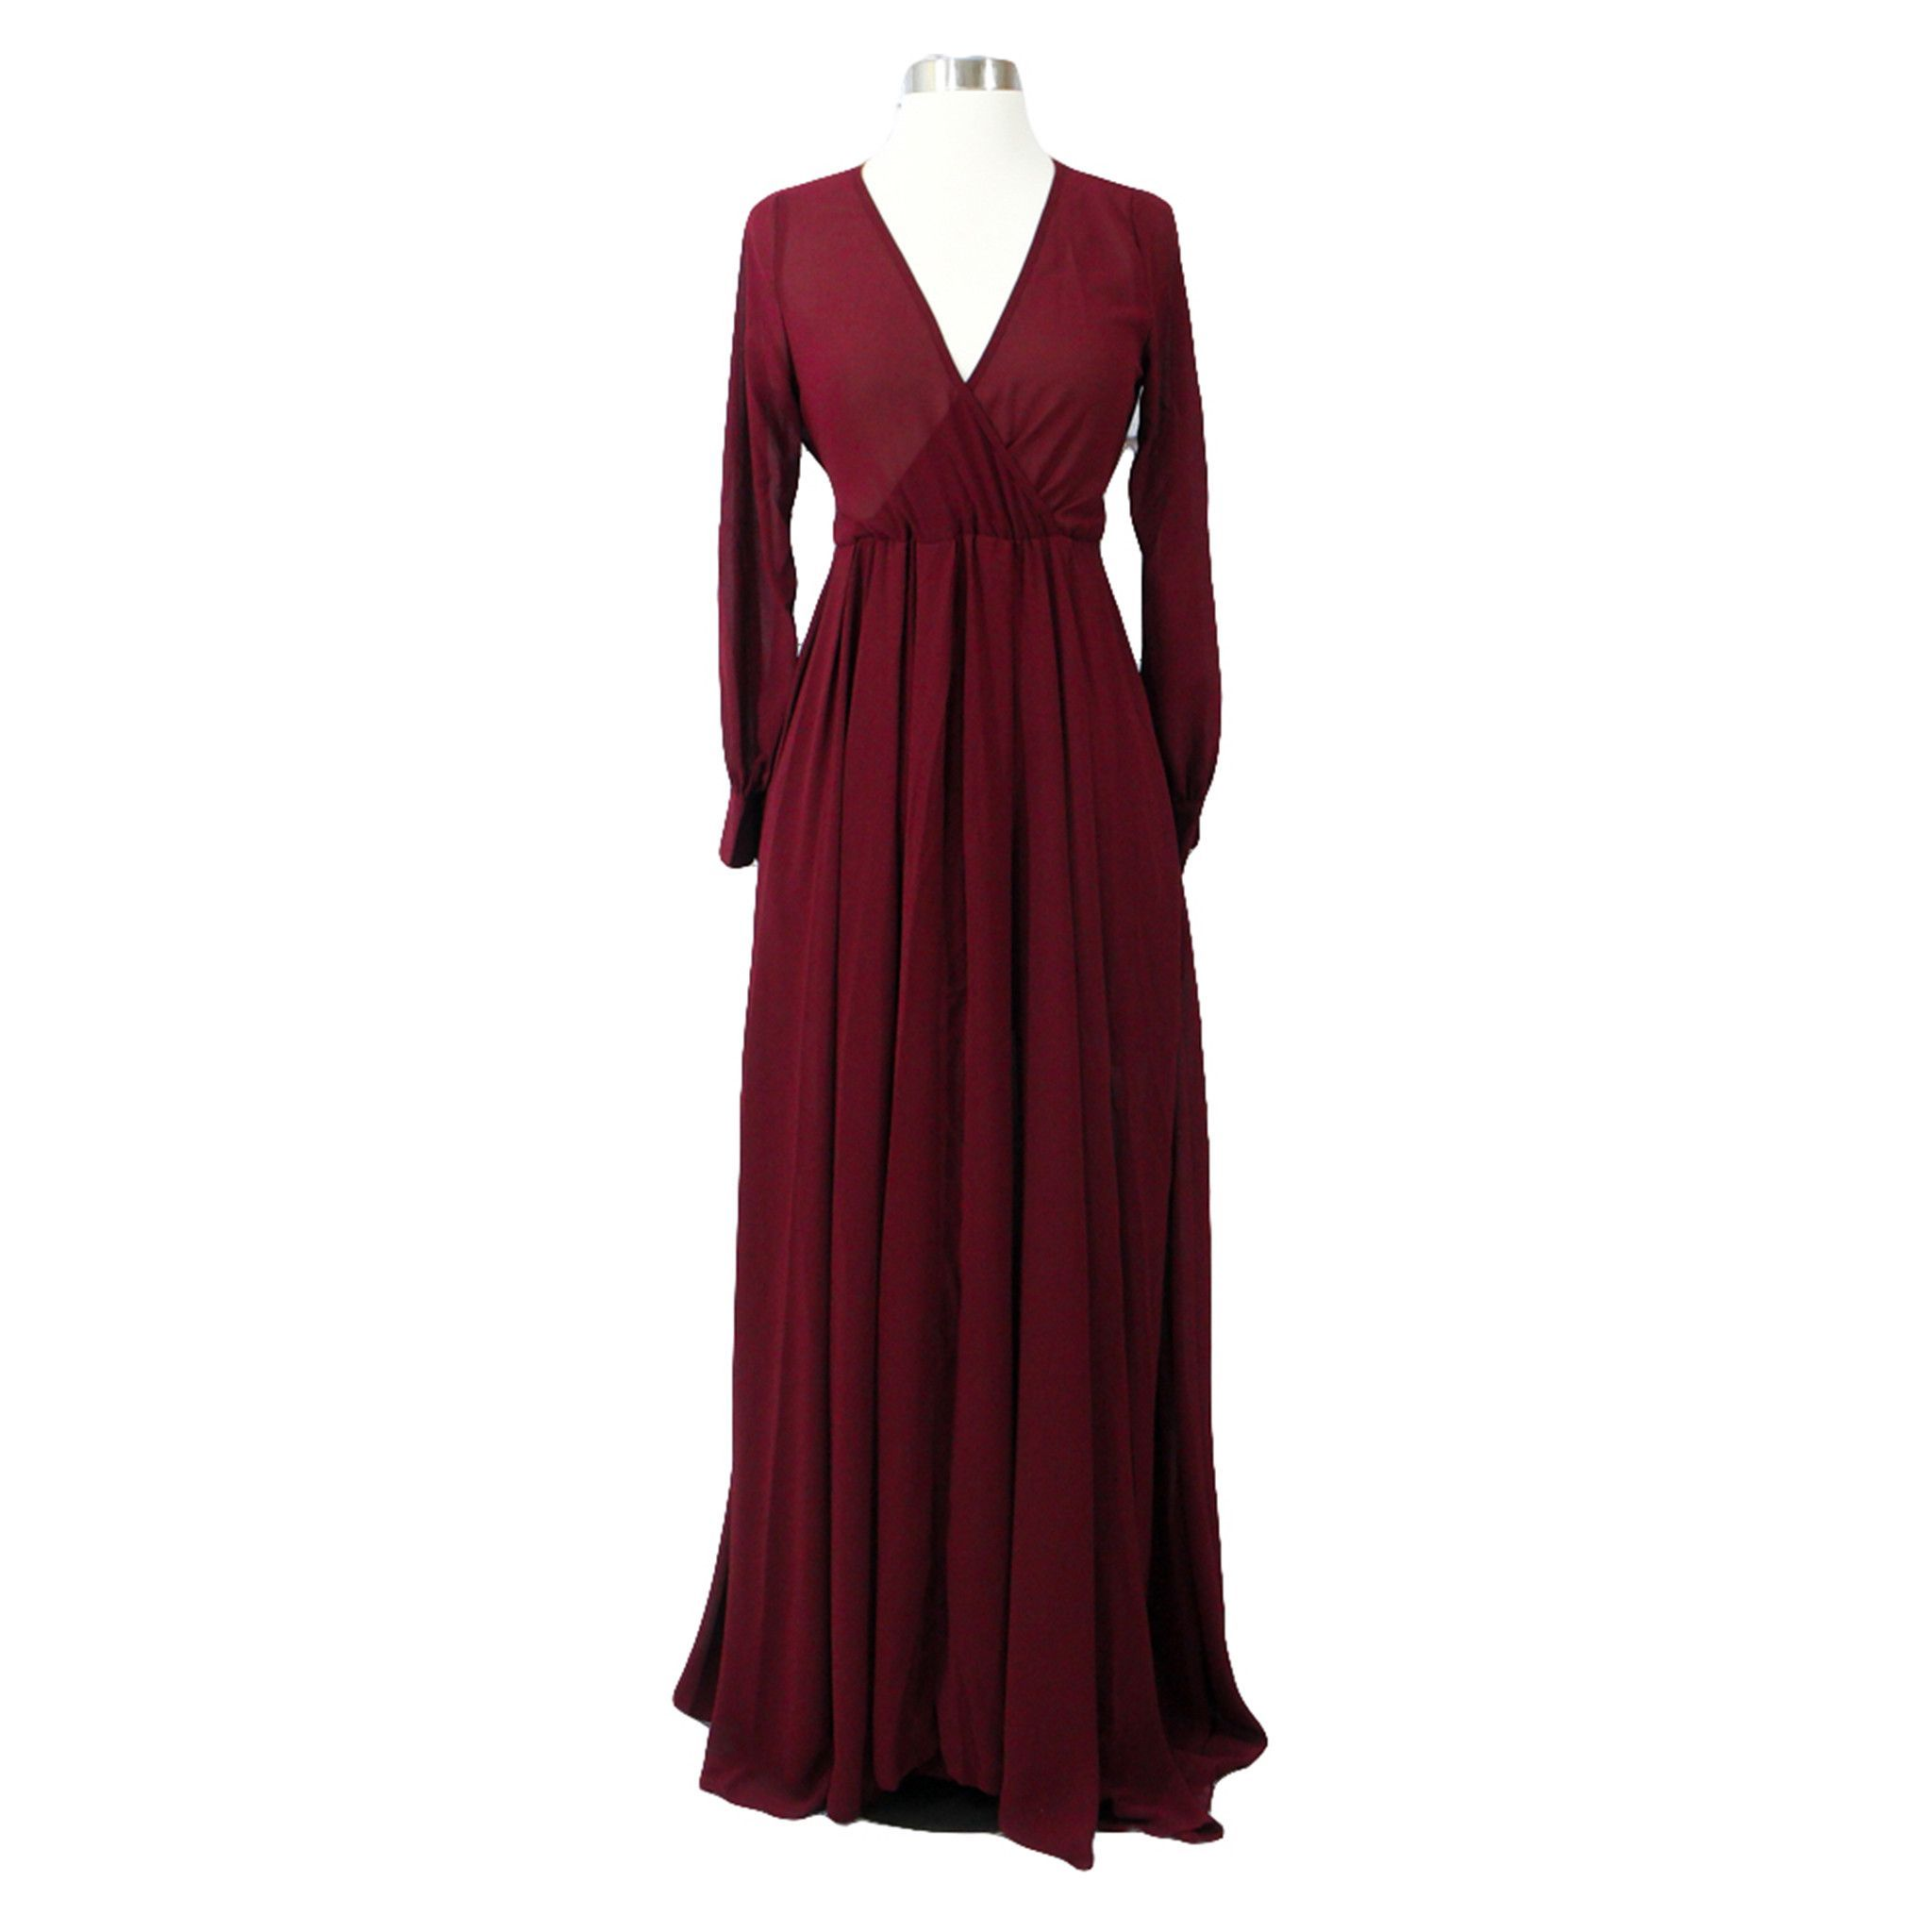 Burgundy red vneck long sleeve chiffon maxi dress products